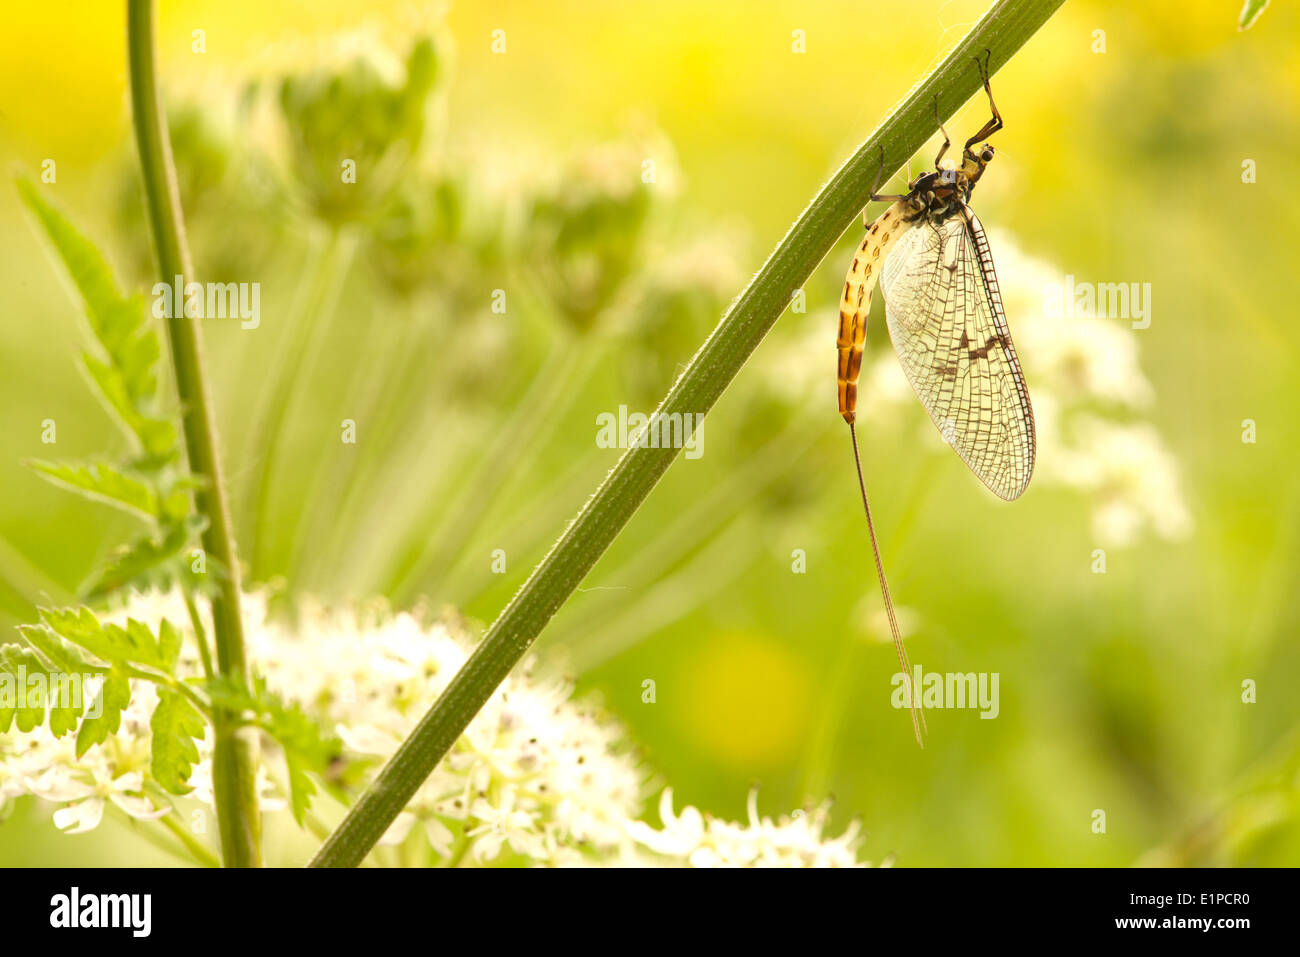 adult mayfly drying its wings - Stock Image